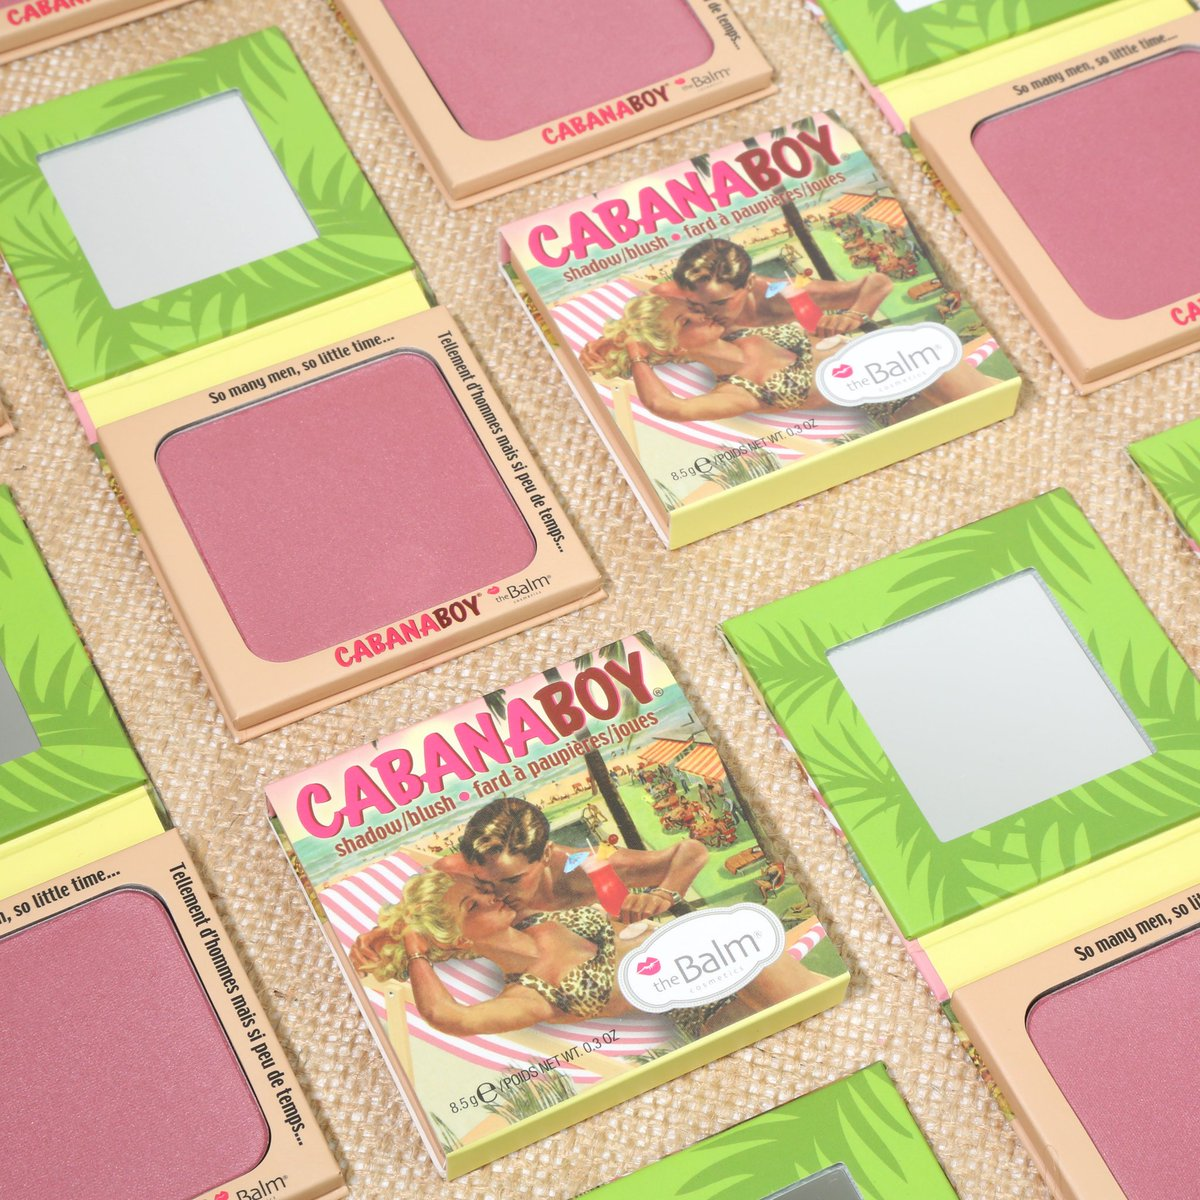 What great service  #CabanaBoy #blush #eyeshadow #theBalm<br>http://pic.twitter.com/6Khq1uHNOG